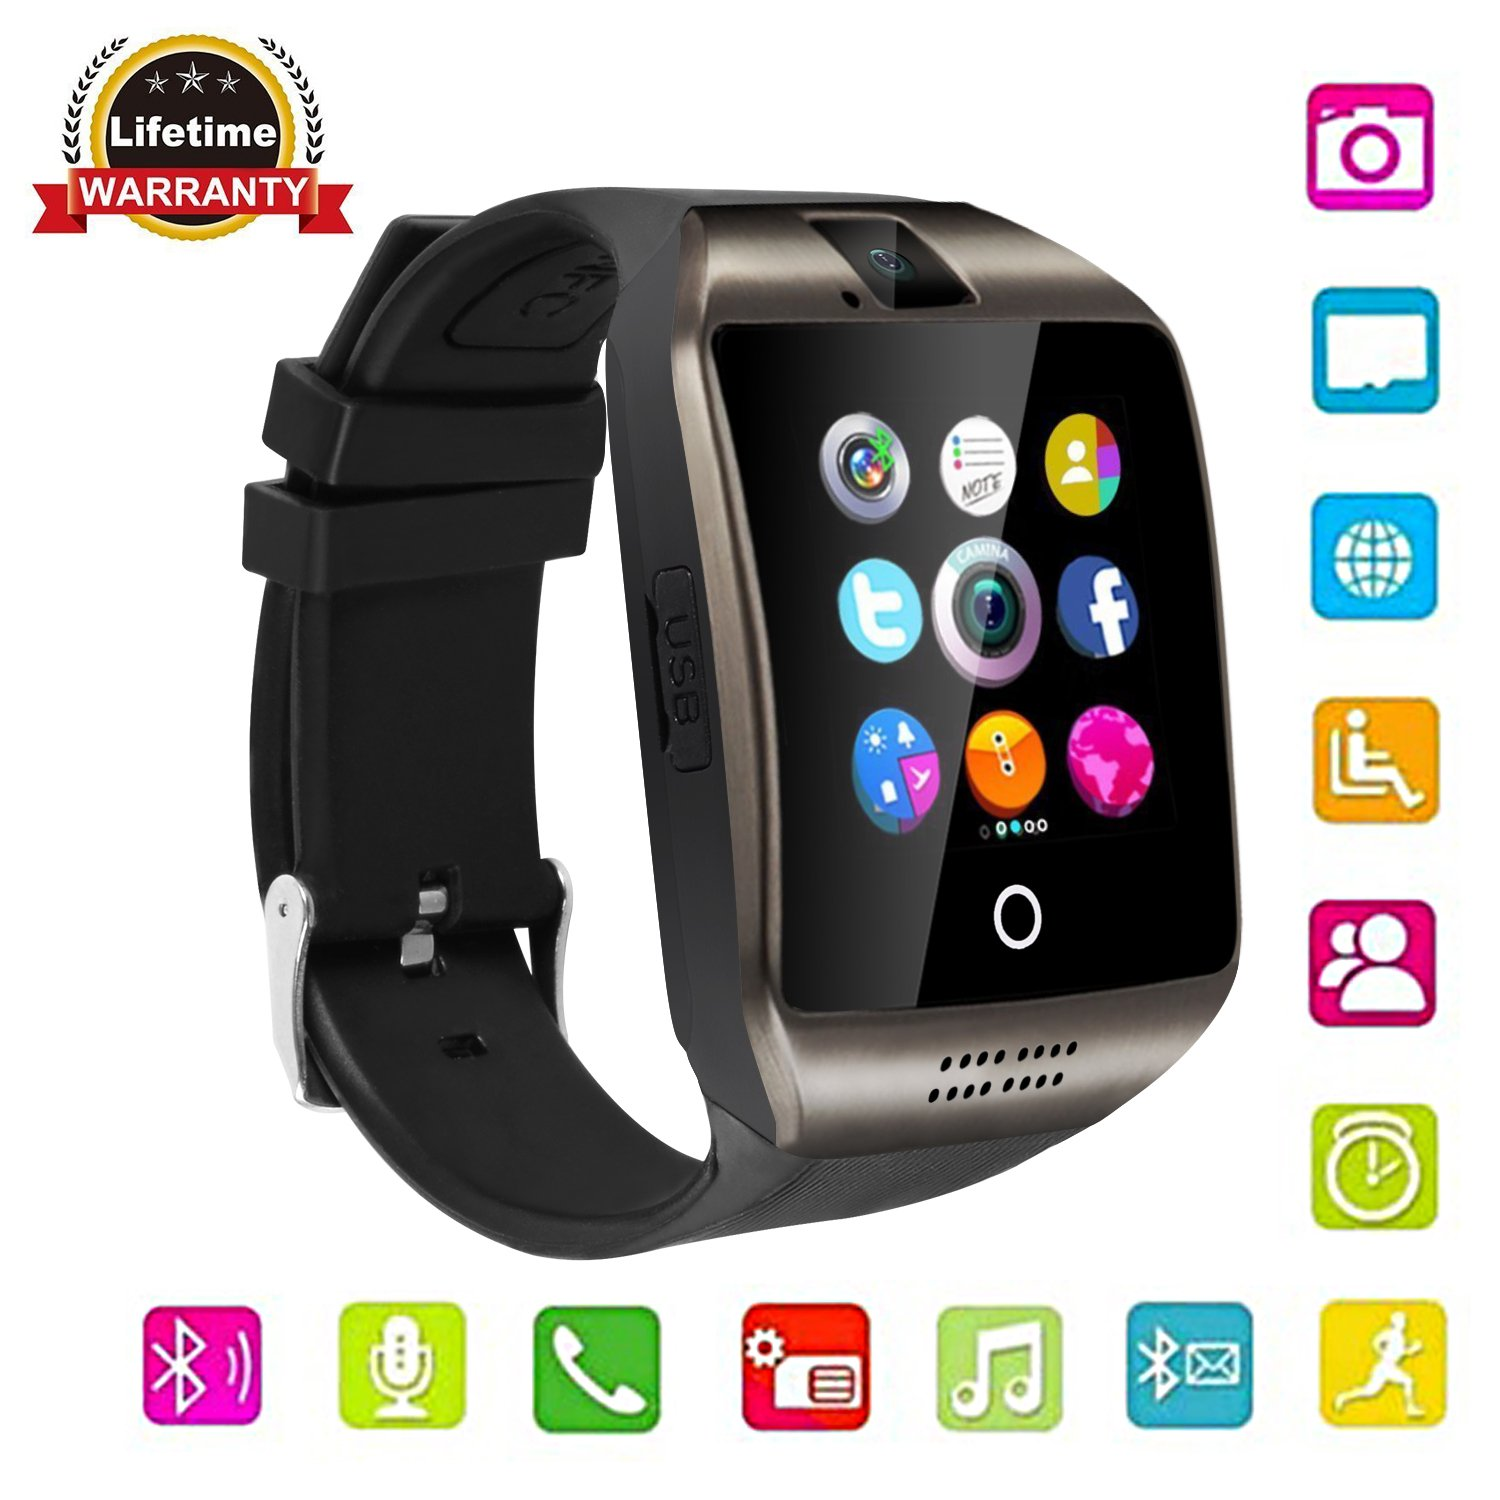 Touch Screen Bluetooth Smart Watch with Camera, Unlocked Watch Cell phone for Android/IOS/ Samsung /iPhone/ Huawei/HTC/ Sony/Nexus (Black)